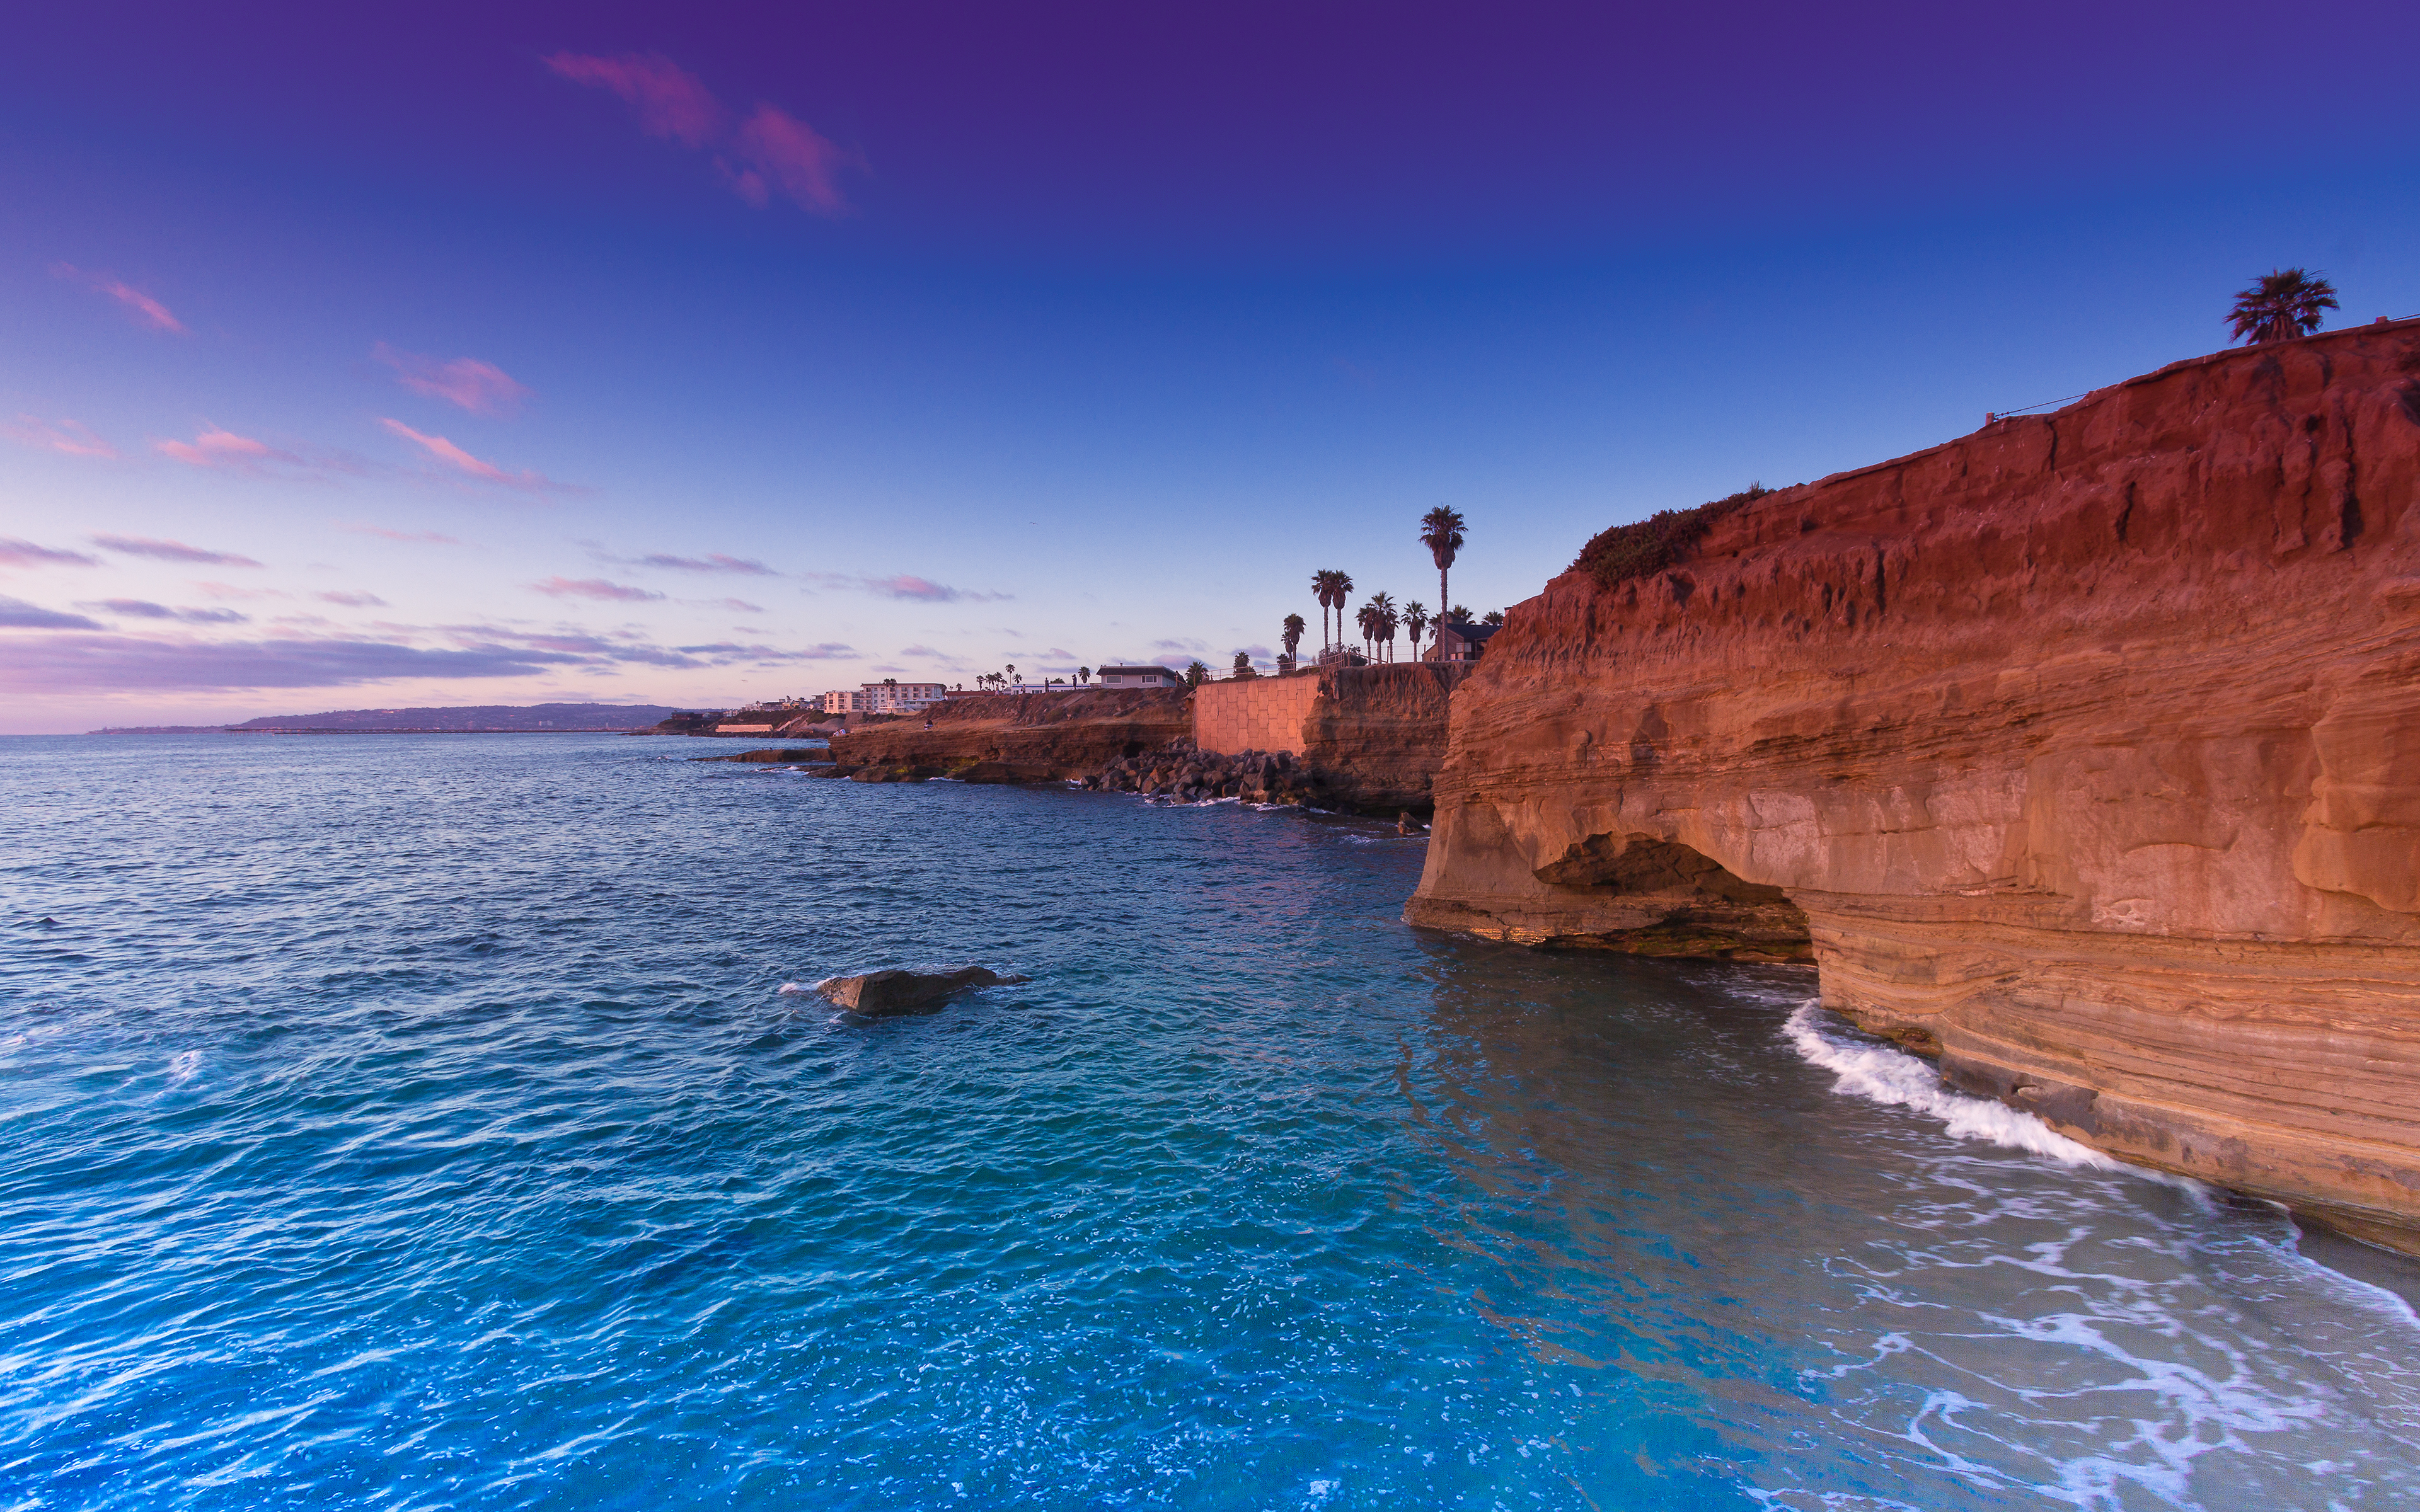 Sunset Cliffs San Diego USA wallpapers and images   wallpapers 3840x2400